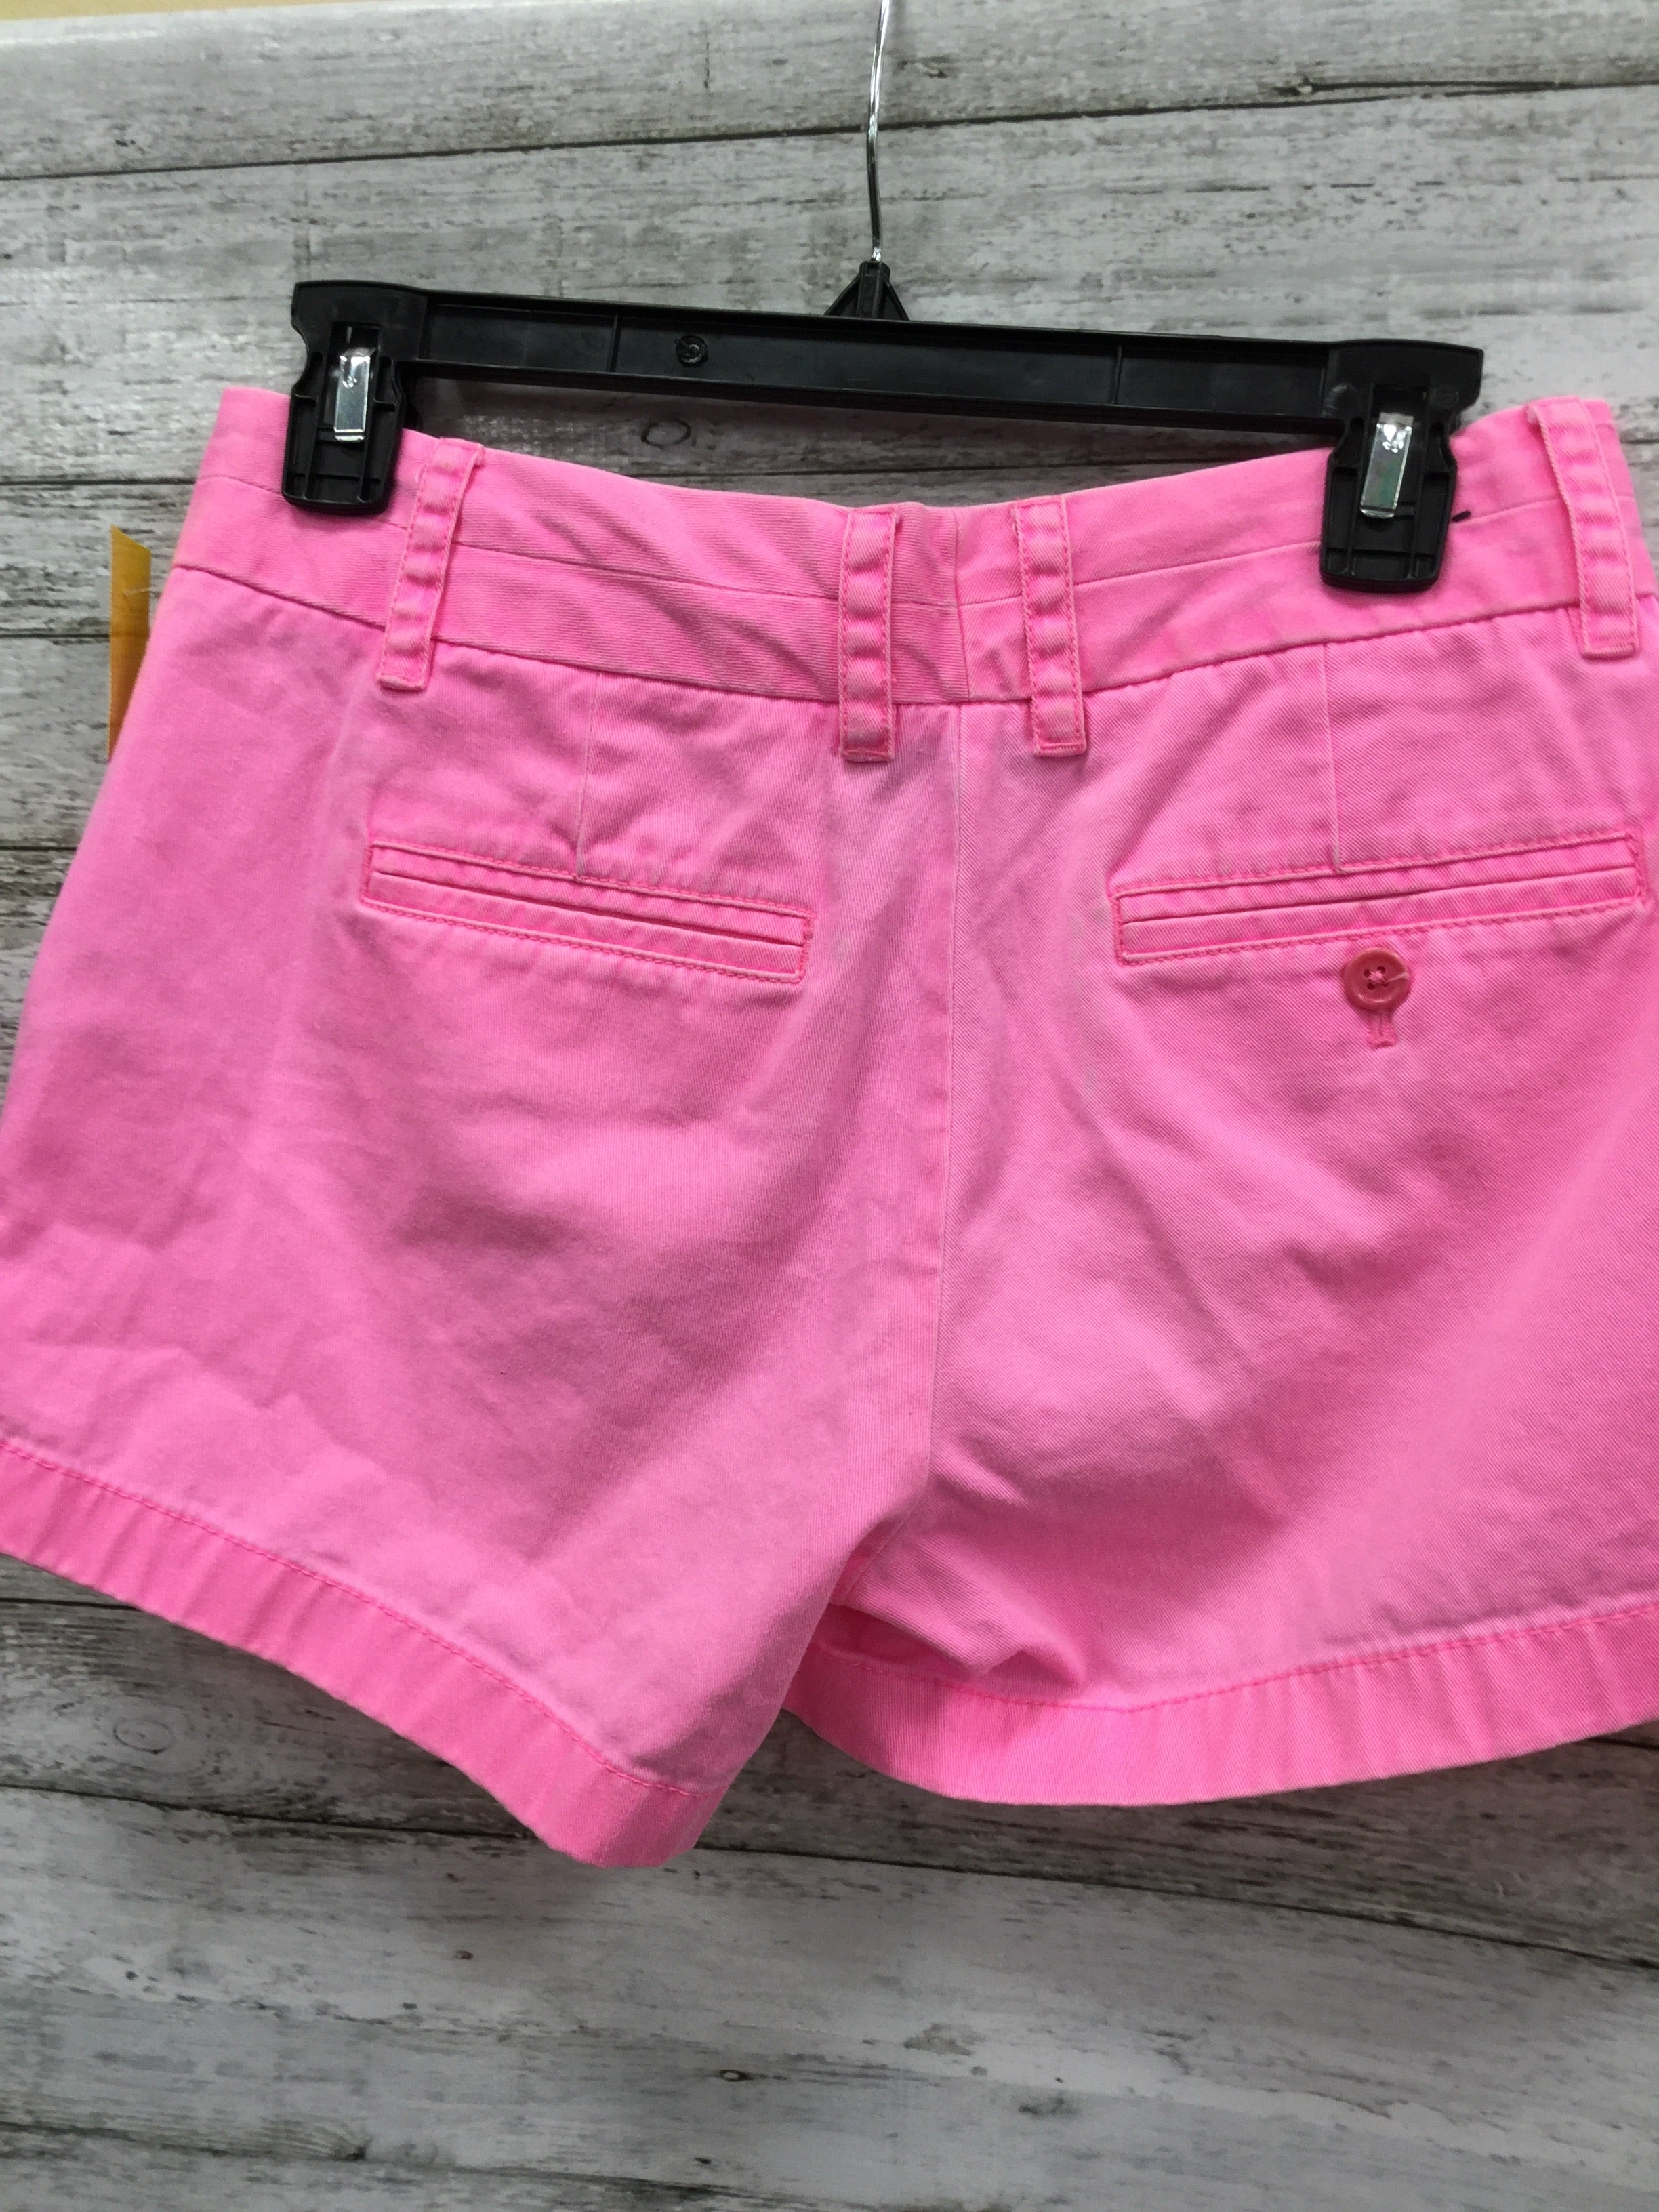 Photo #1 - BRAND: J CREW O <BR>STYLE: SHORTS <BR>COLOR: PINK <BR>SIZE: 0 <BR>SKU: 127-3371-45898